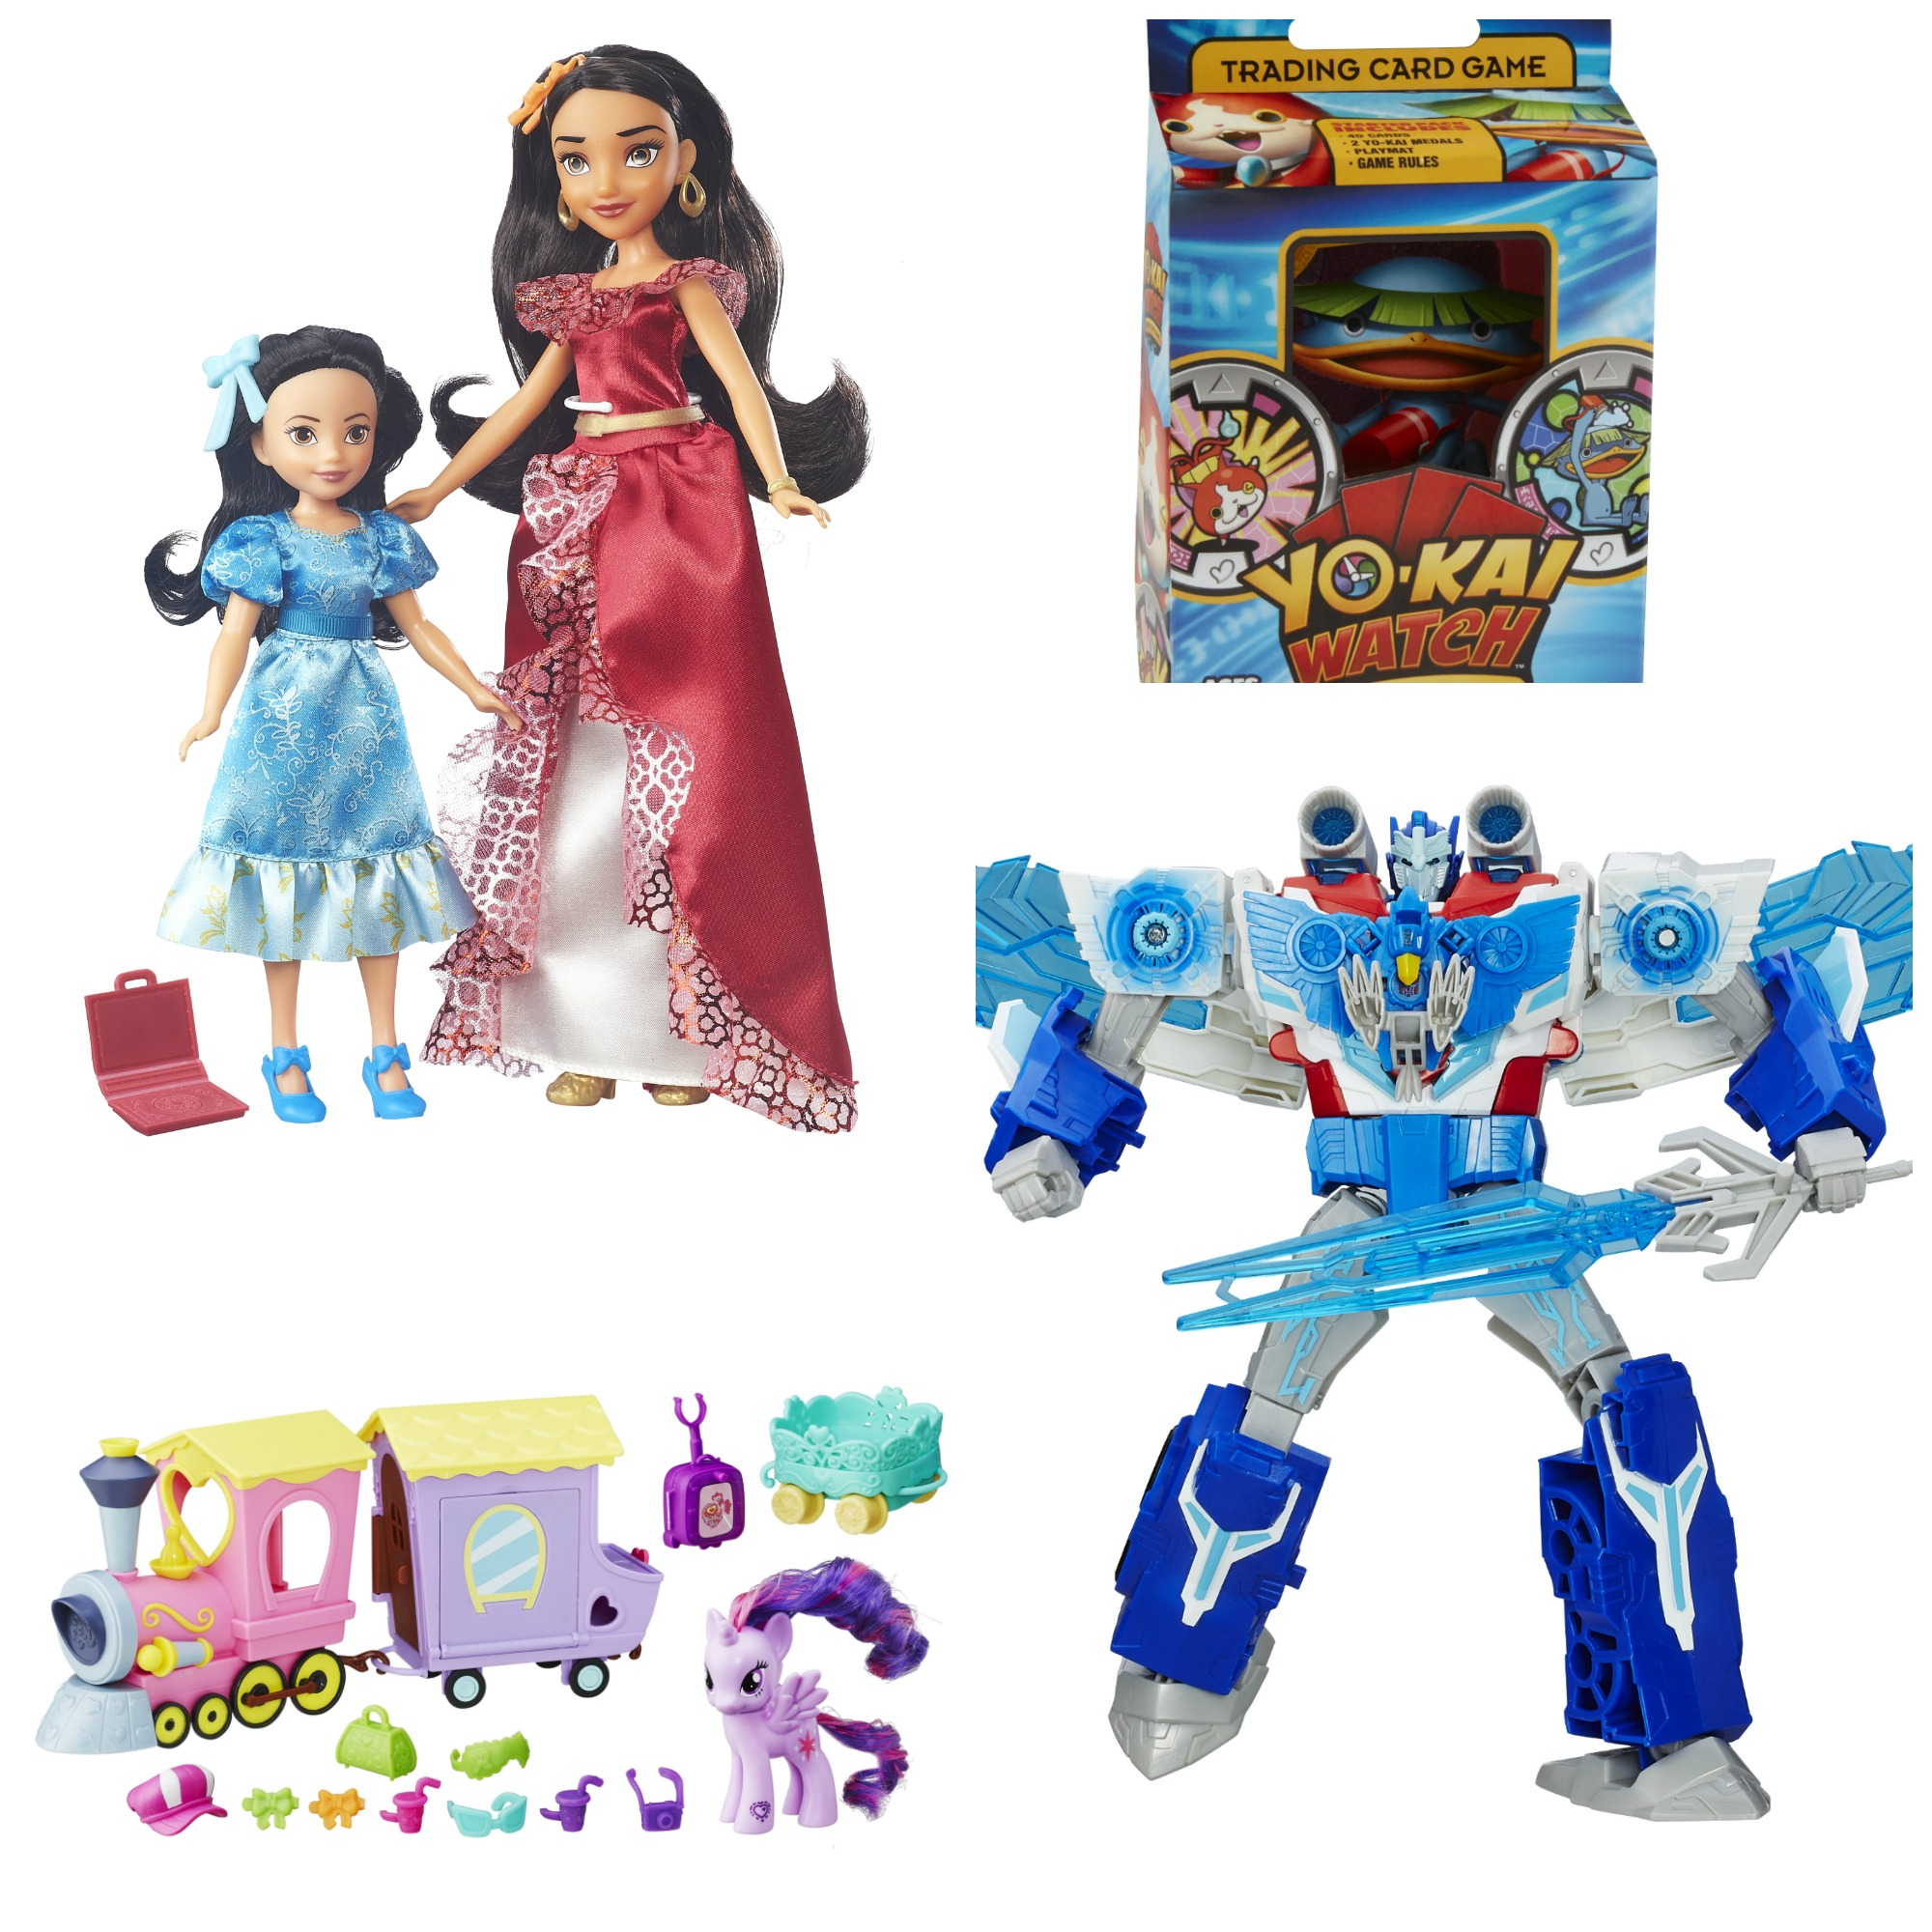 Toys From Hasbro : Hot brand new hasbro toys giveaway worth over